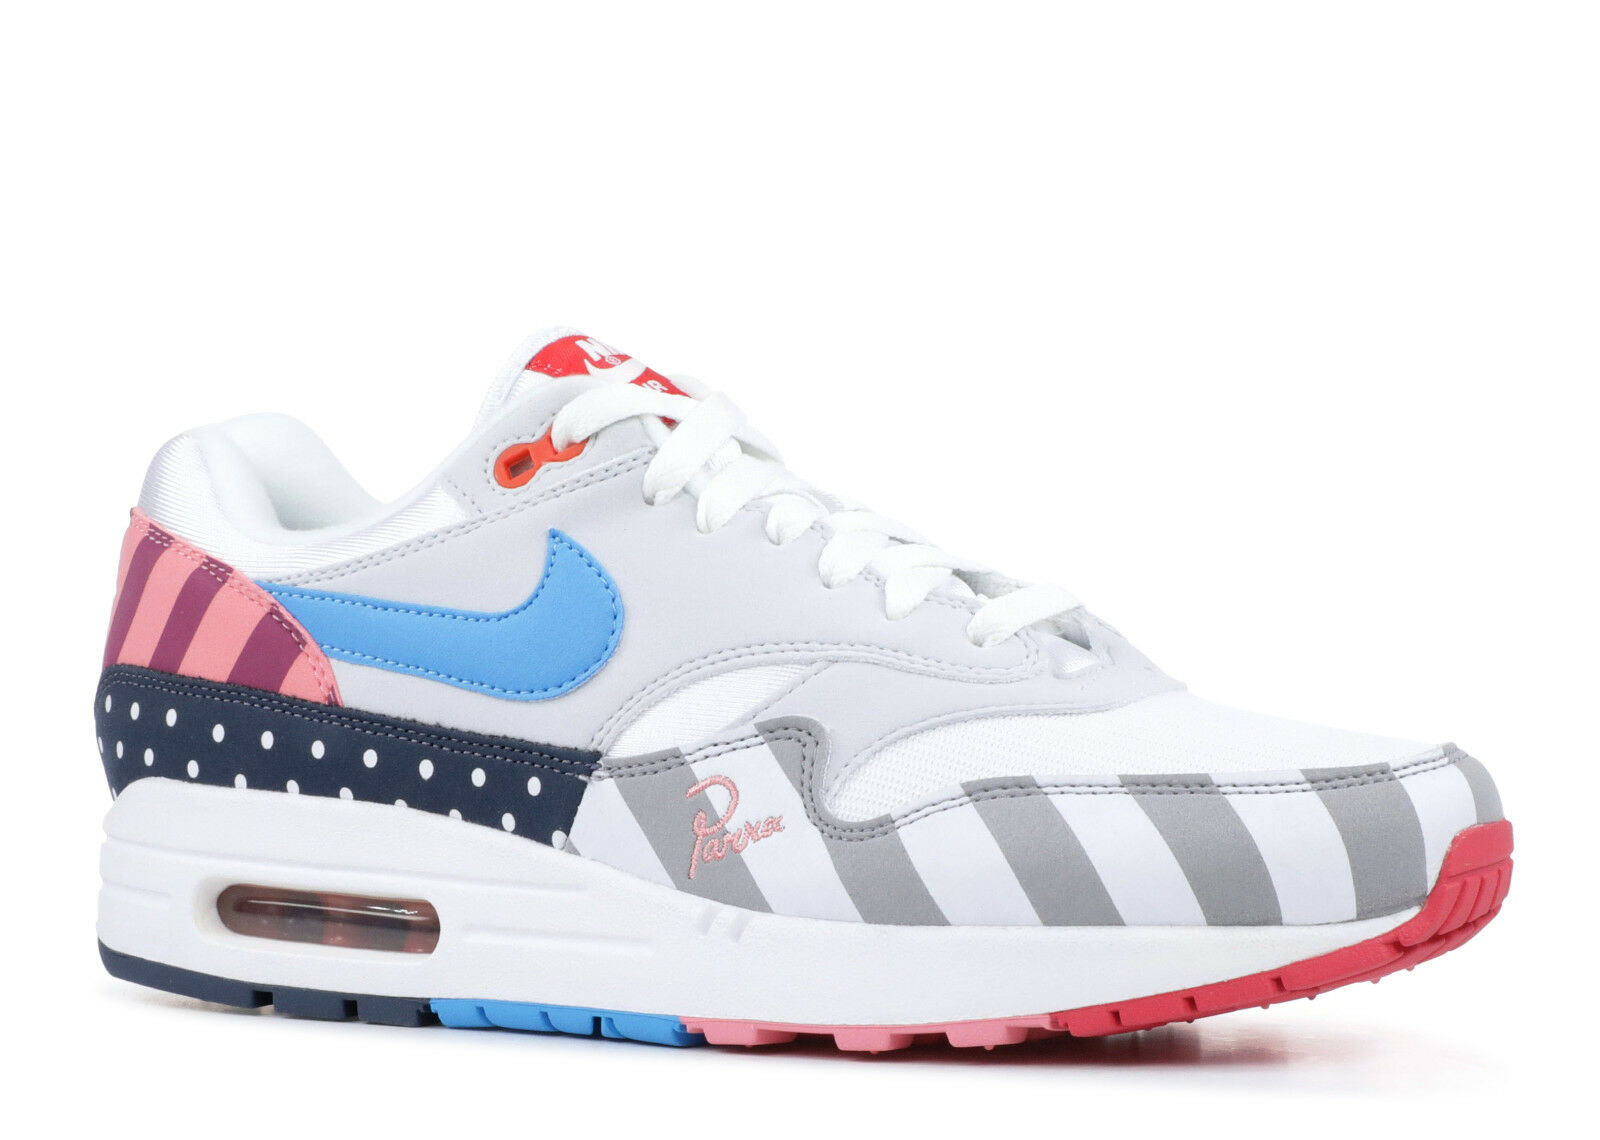 Air Air Air Max 1 Parra 'Parra' - At3057-100 - Size 9.5 477c6e